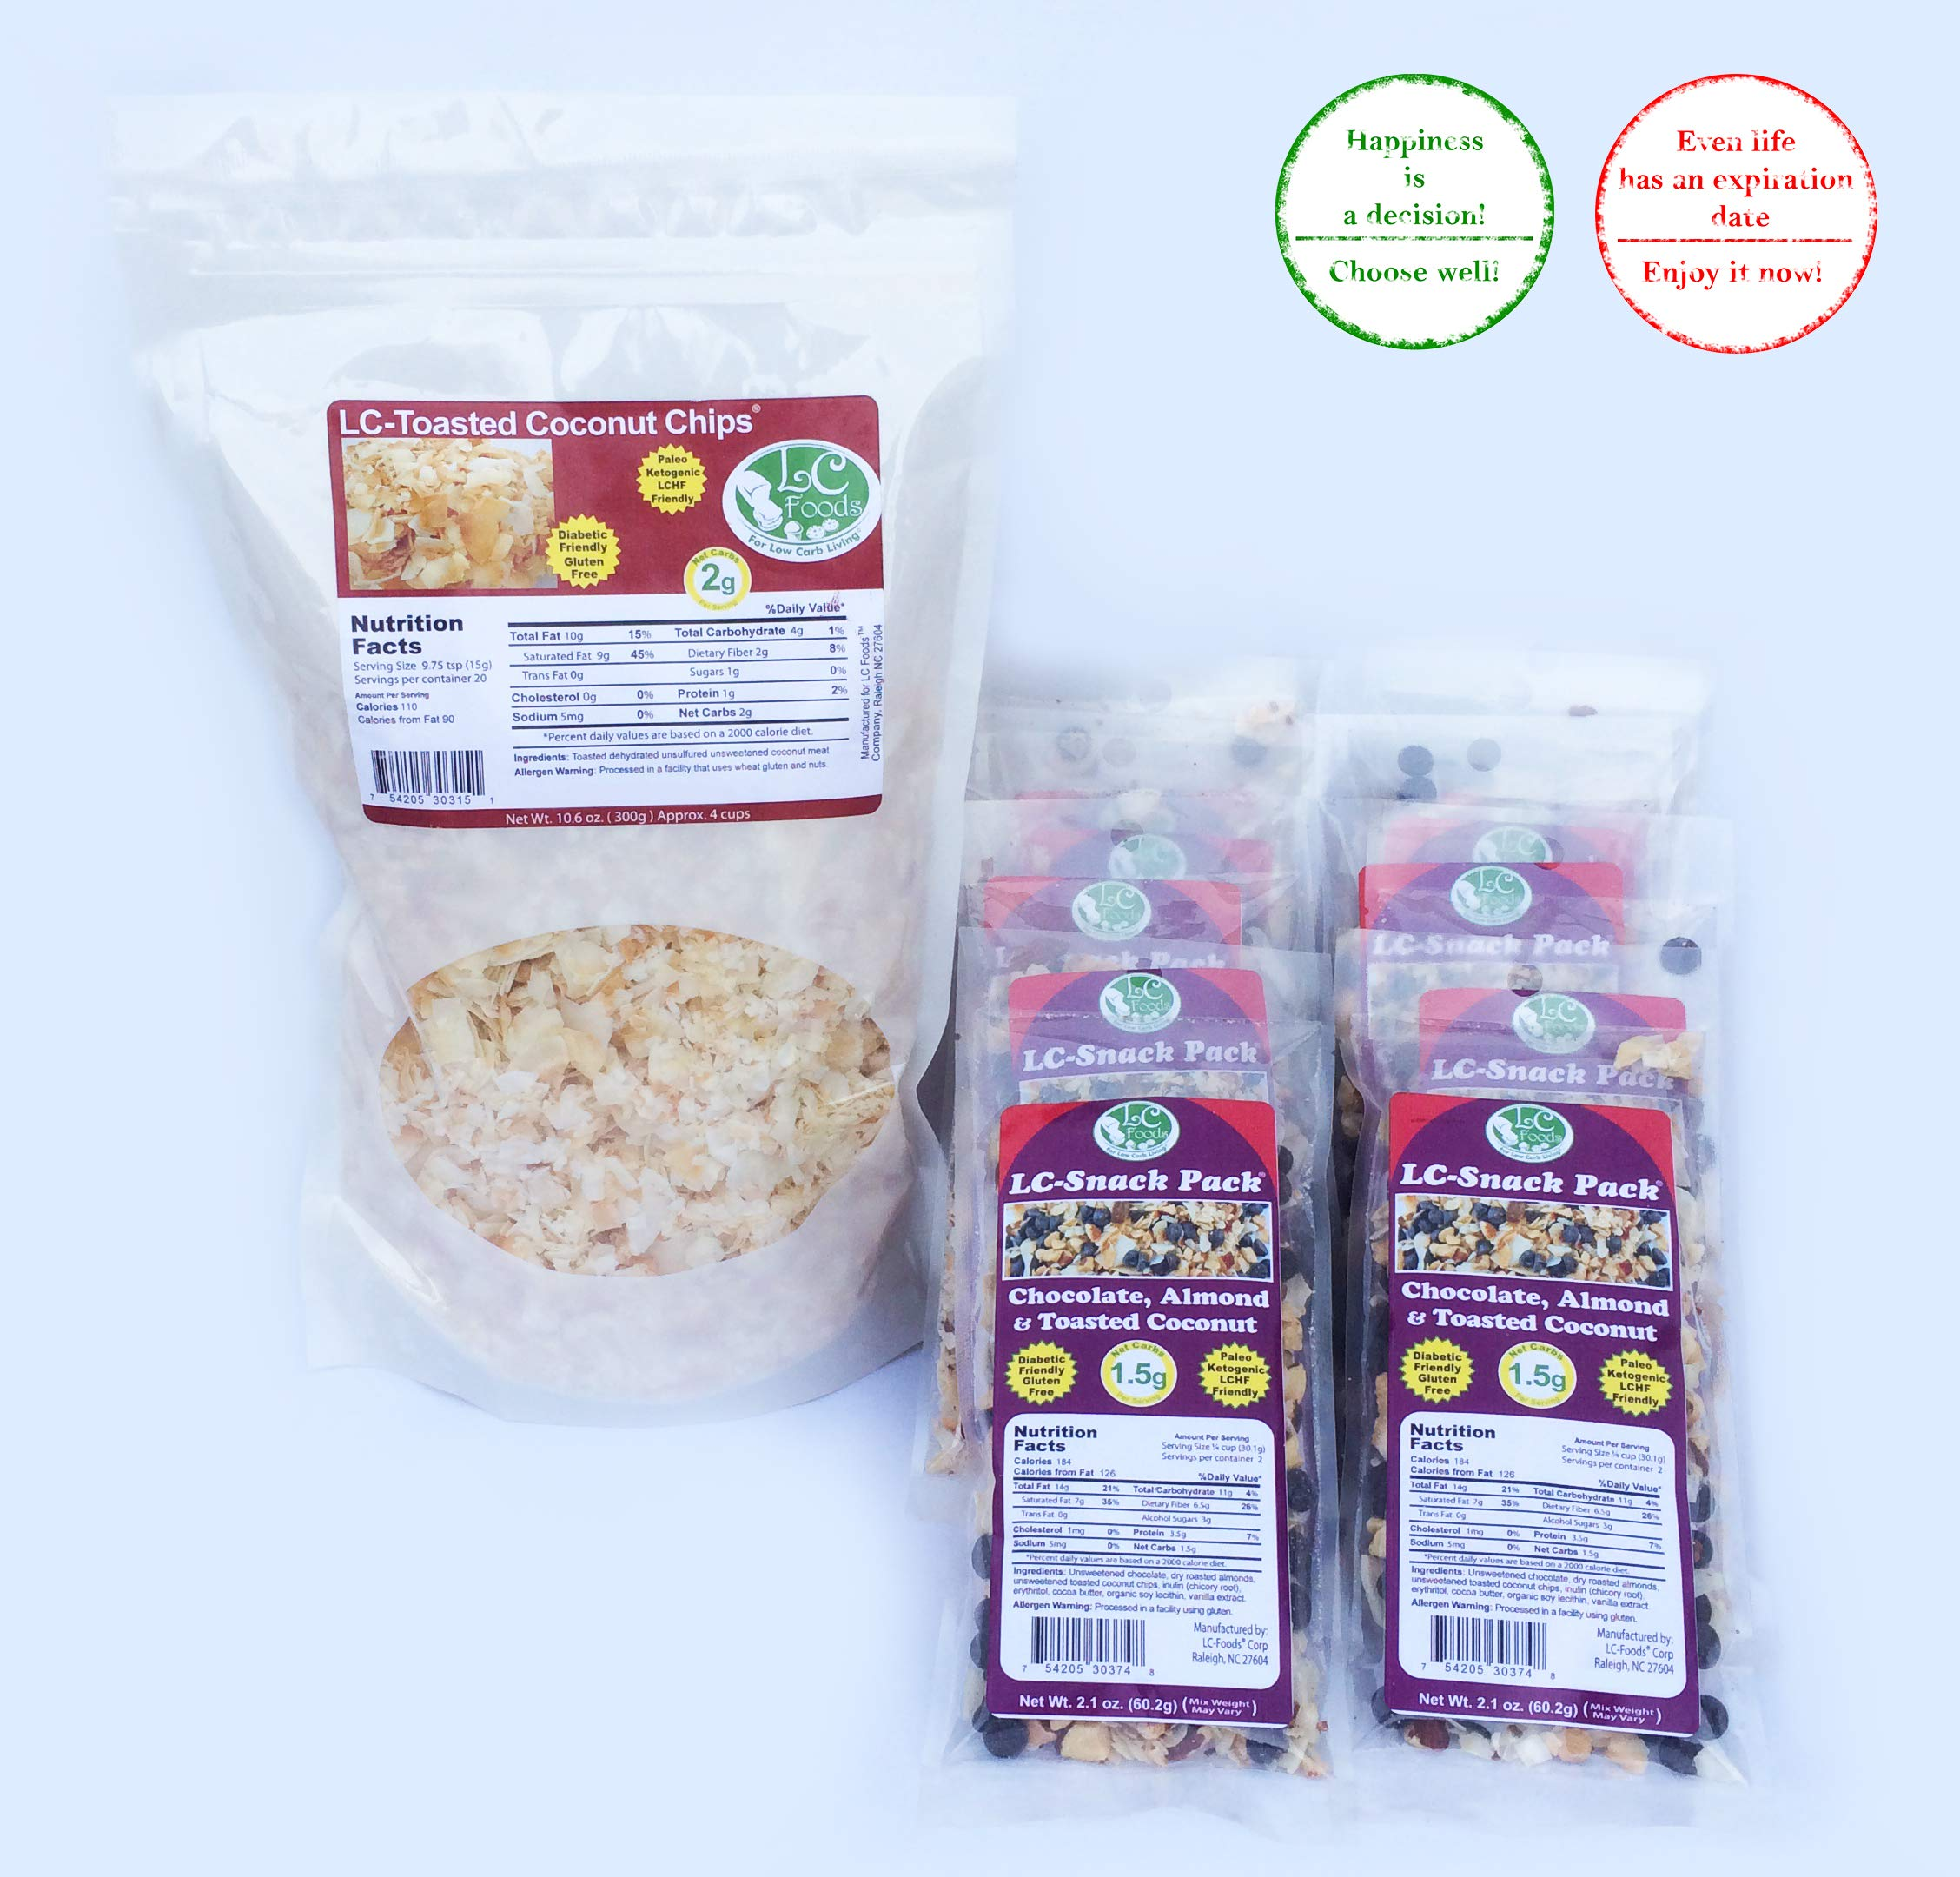 Keto Foods And Snacks, Unsweetened Toasted Coconut Chips + Chocolate Almond & Toasted Coconut Snack Packs by LC Foods, Atkins Diet, Gluten Free Treats For Kids & Adults by LC-Foods (Image #1)